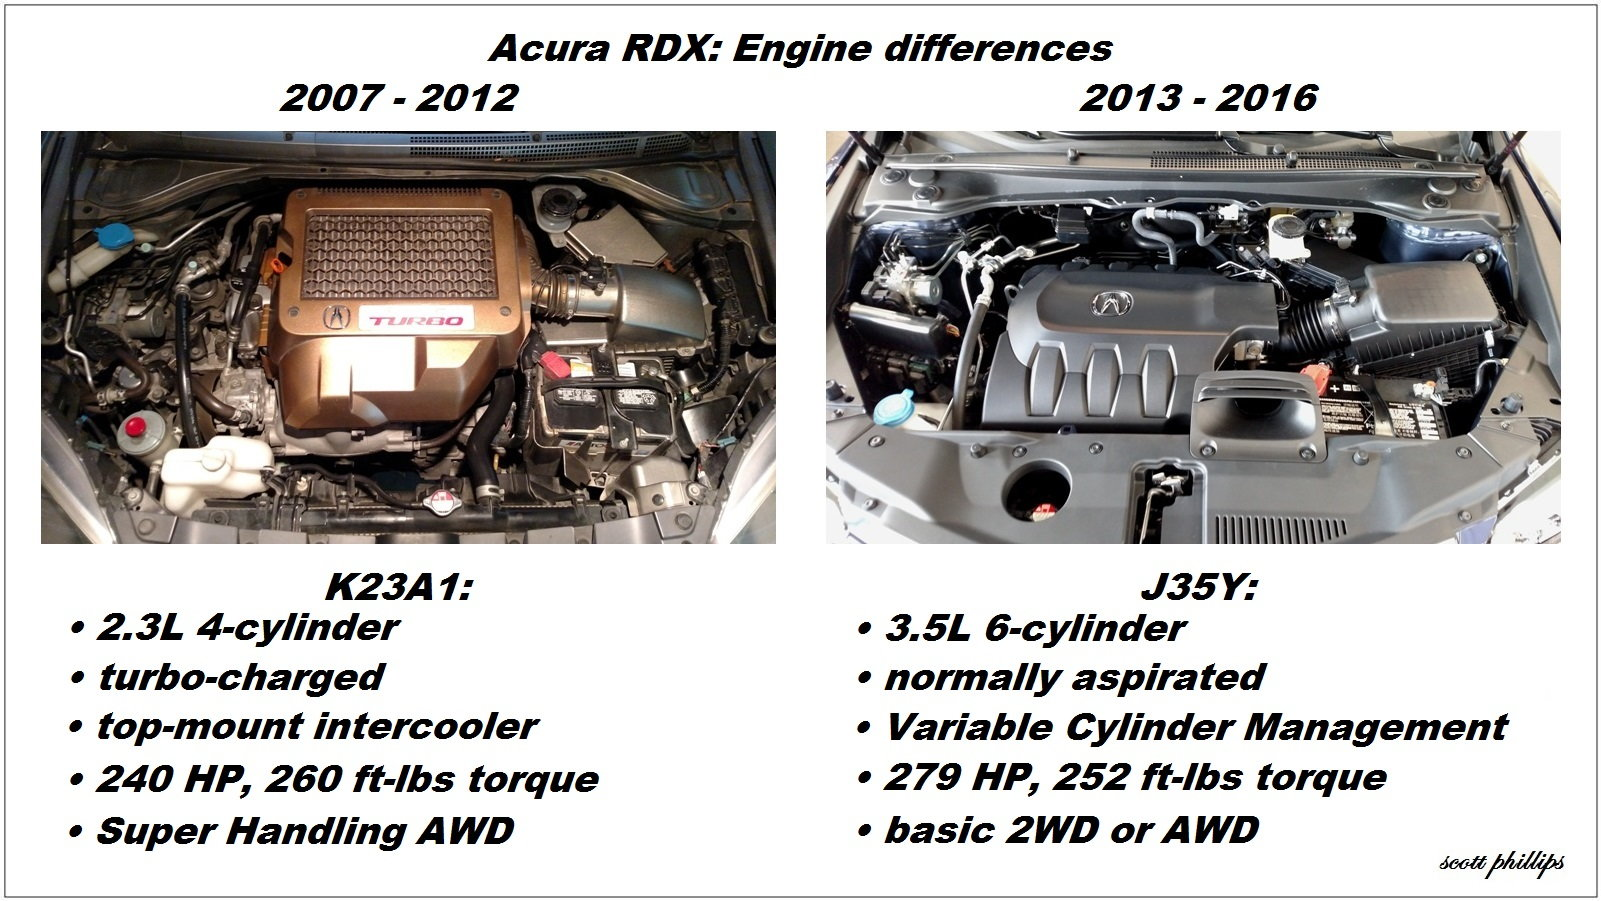 WRG-9367] 2007 Acura Rdx Engine Diagram on